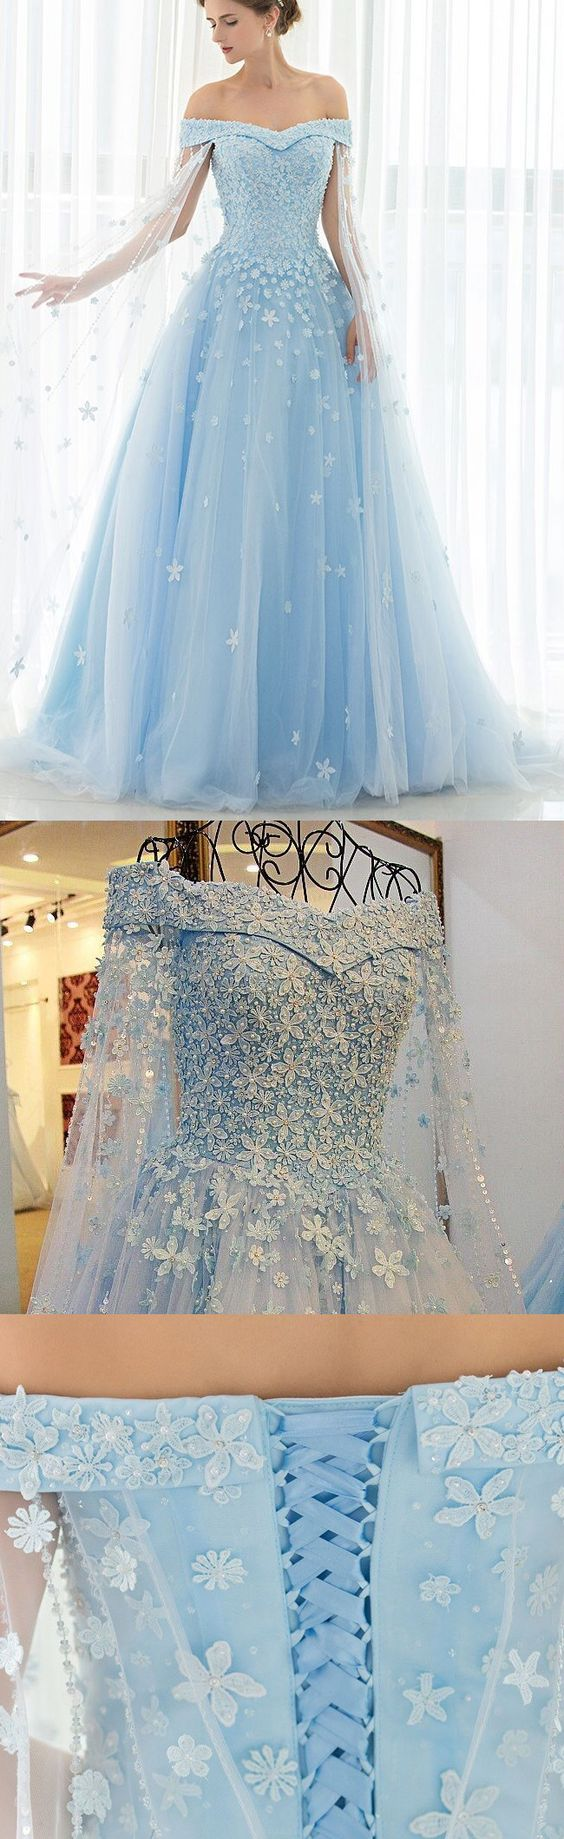 Princess Prom Evening Dresses Long Light Blue Dresses With Lace Up ...